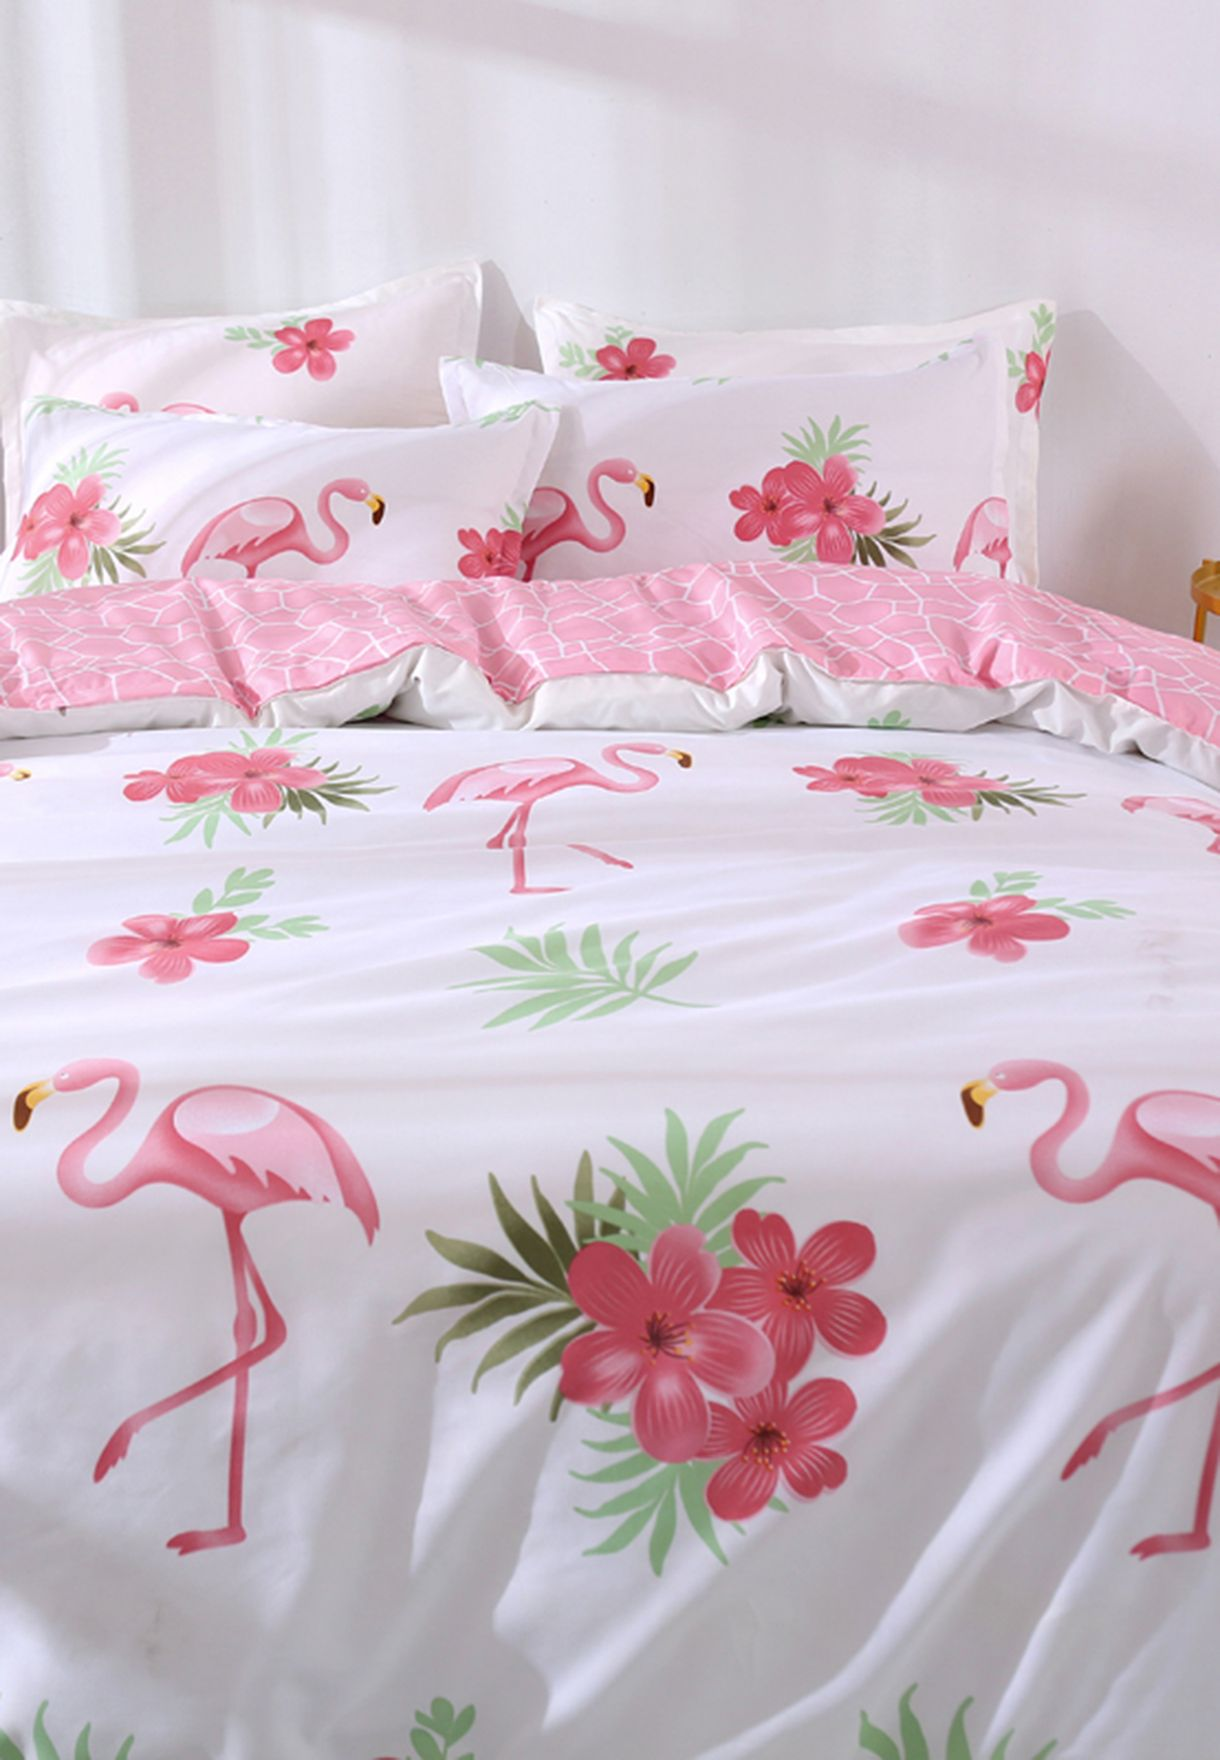 Tropial Flamingo Print Bedding Set - Double 200x200cm